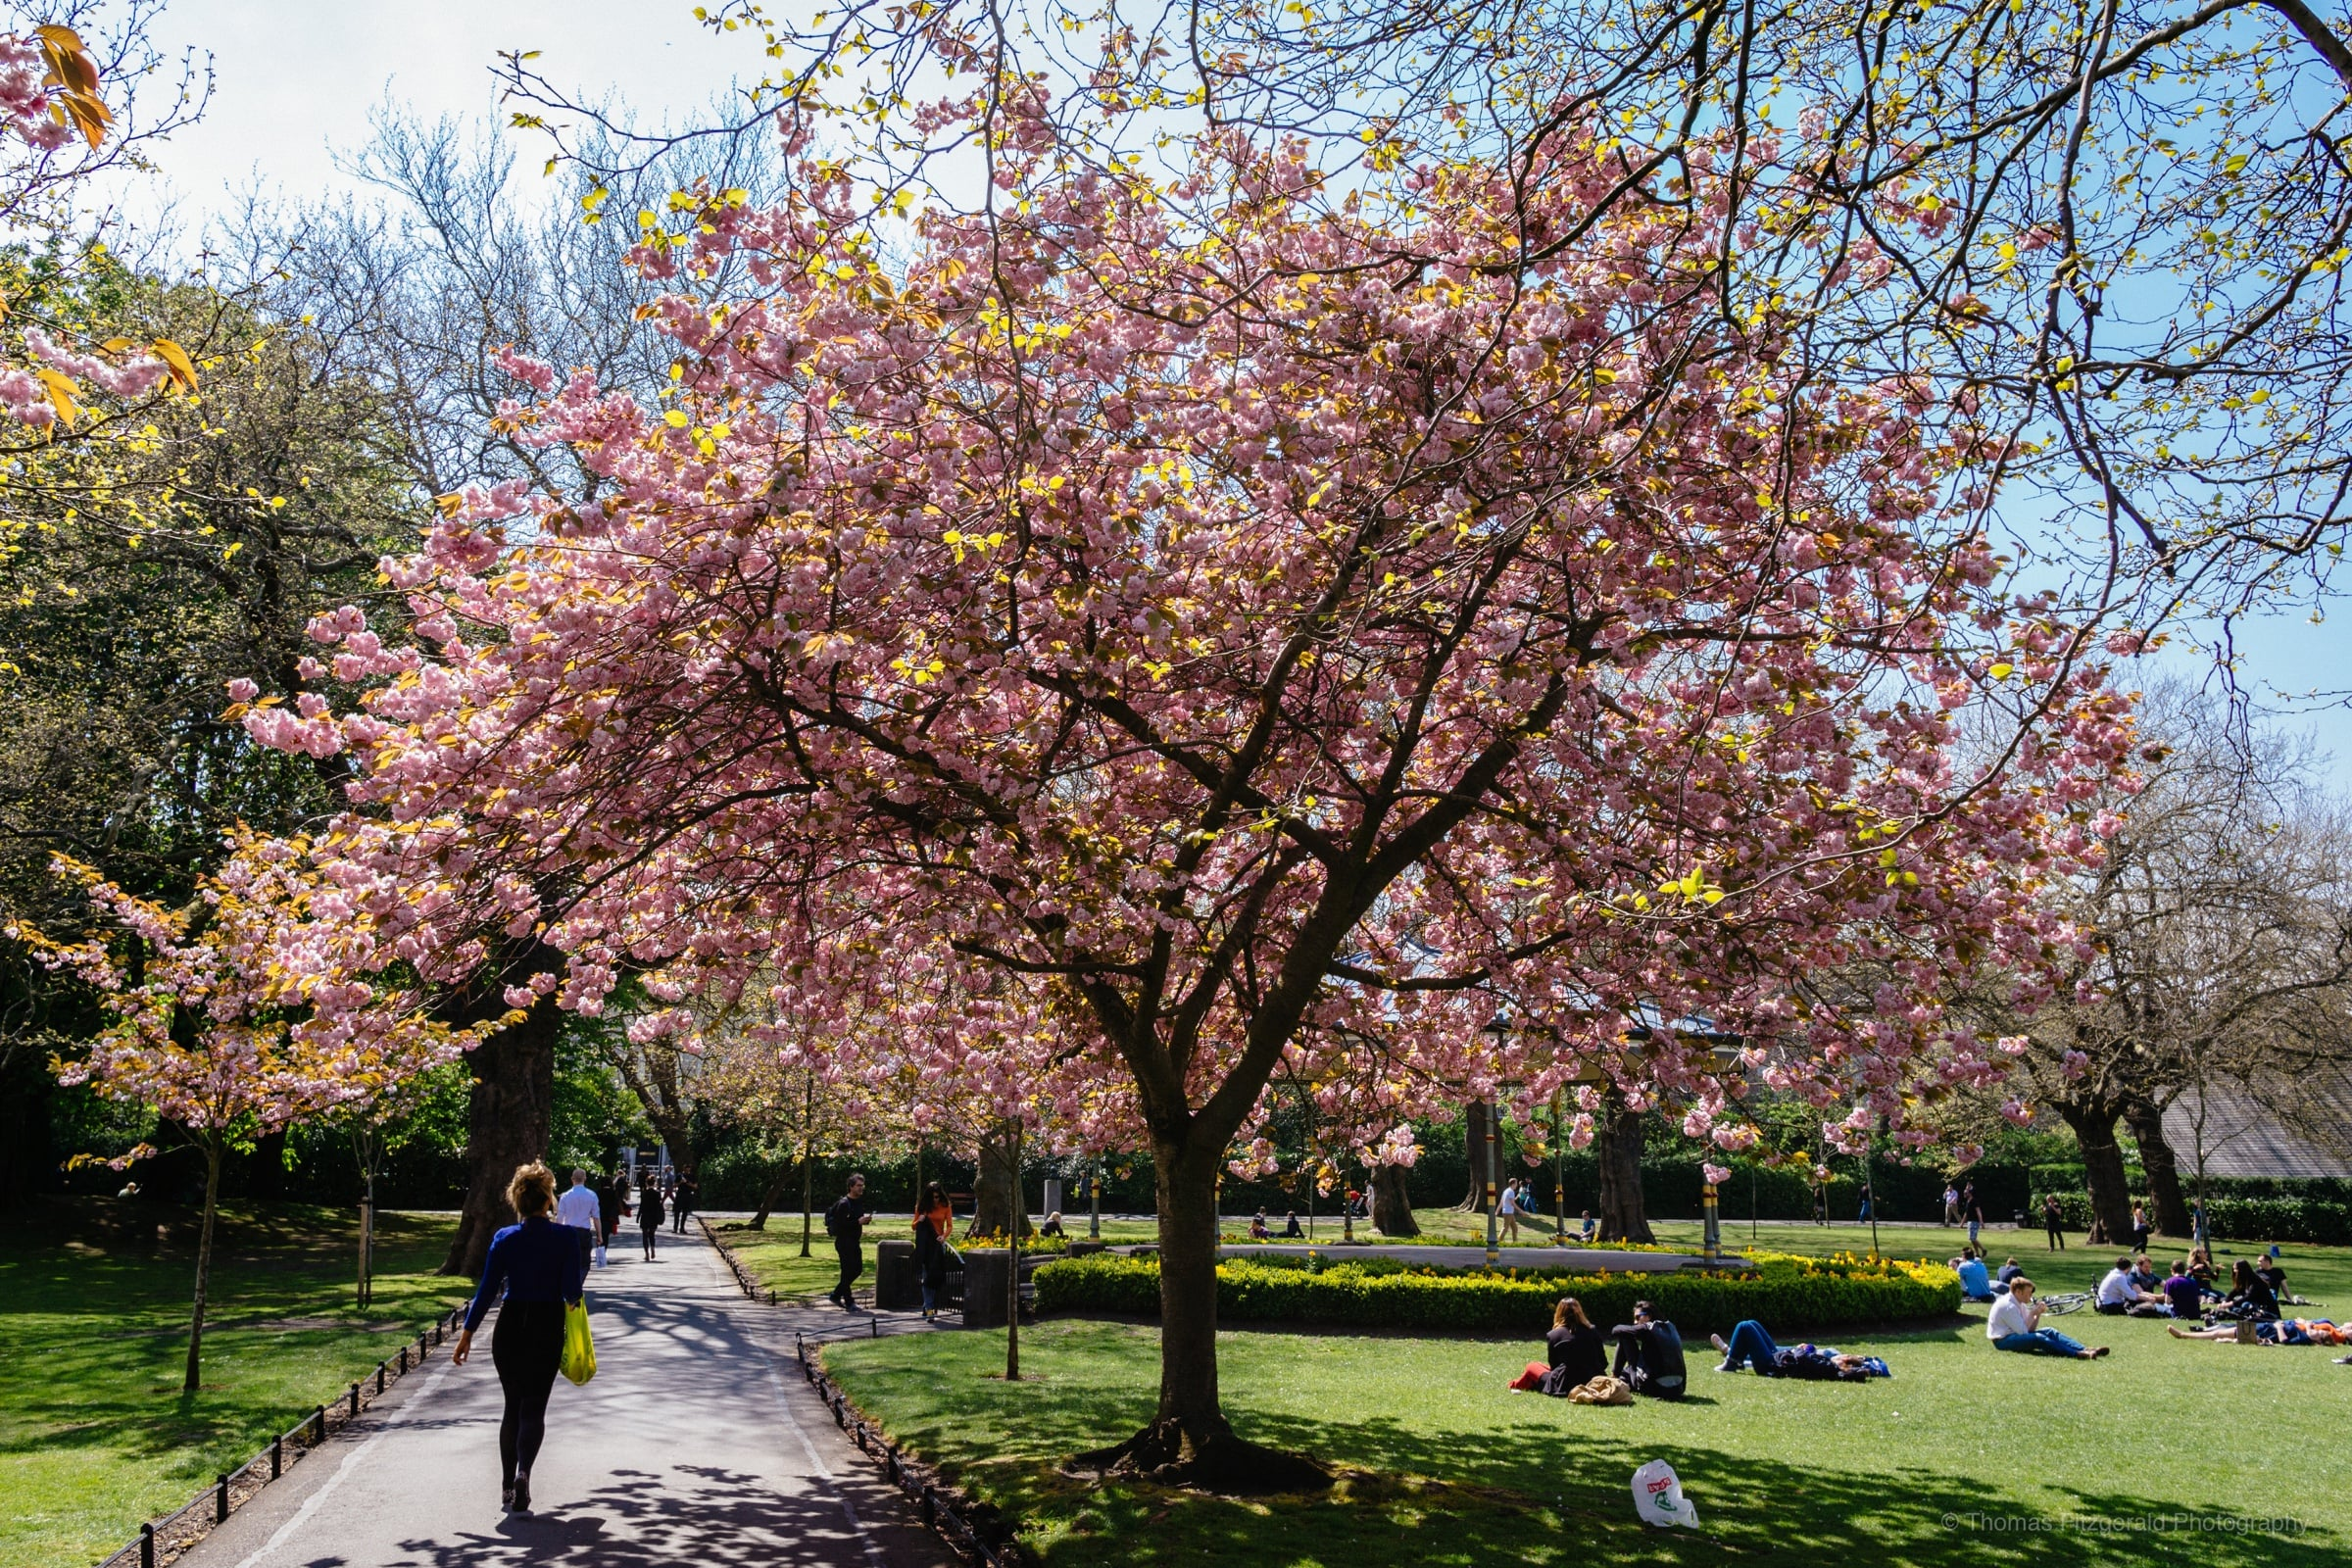 Spring in St. Stephen's Green